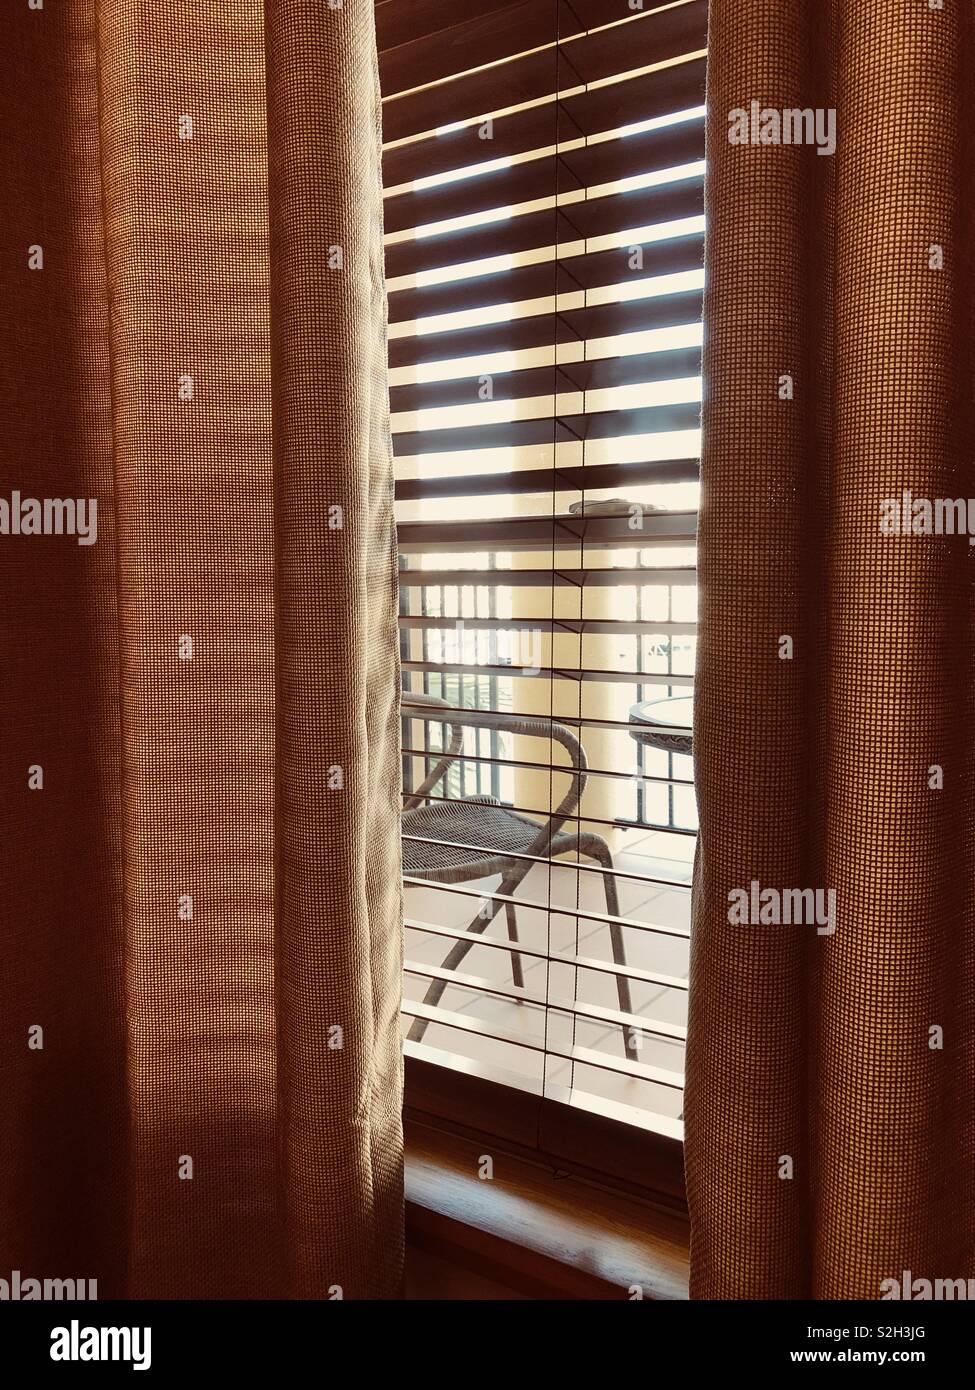 Looking through window - Stock Image